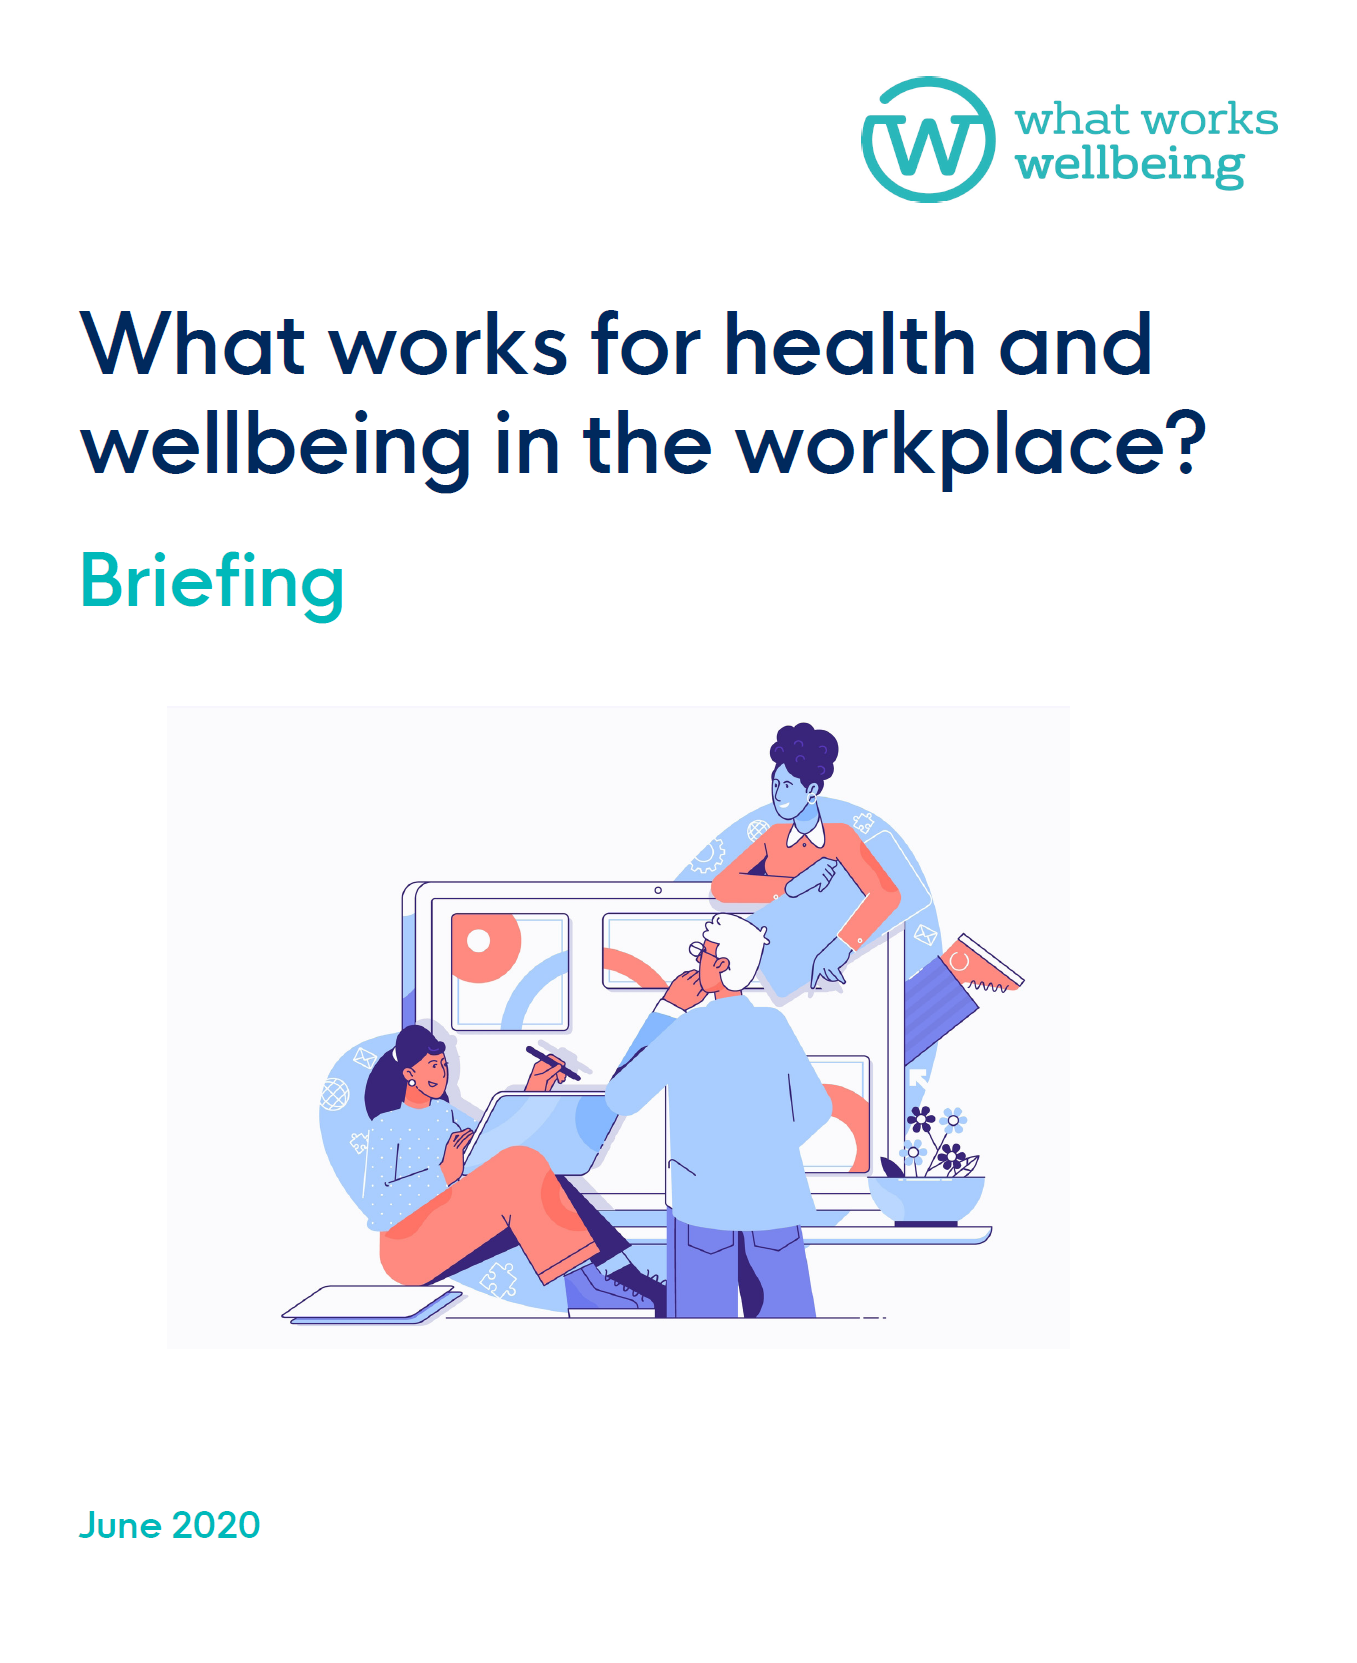 What works for health and wellbeing in the workplace?